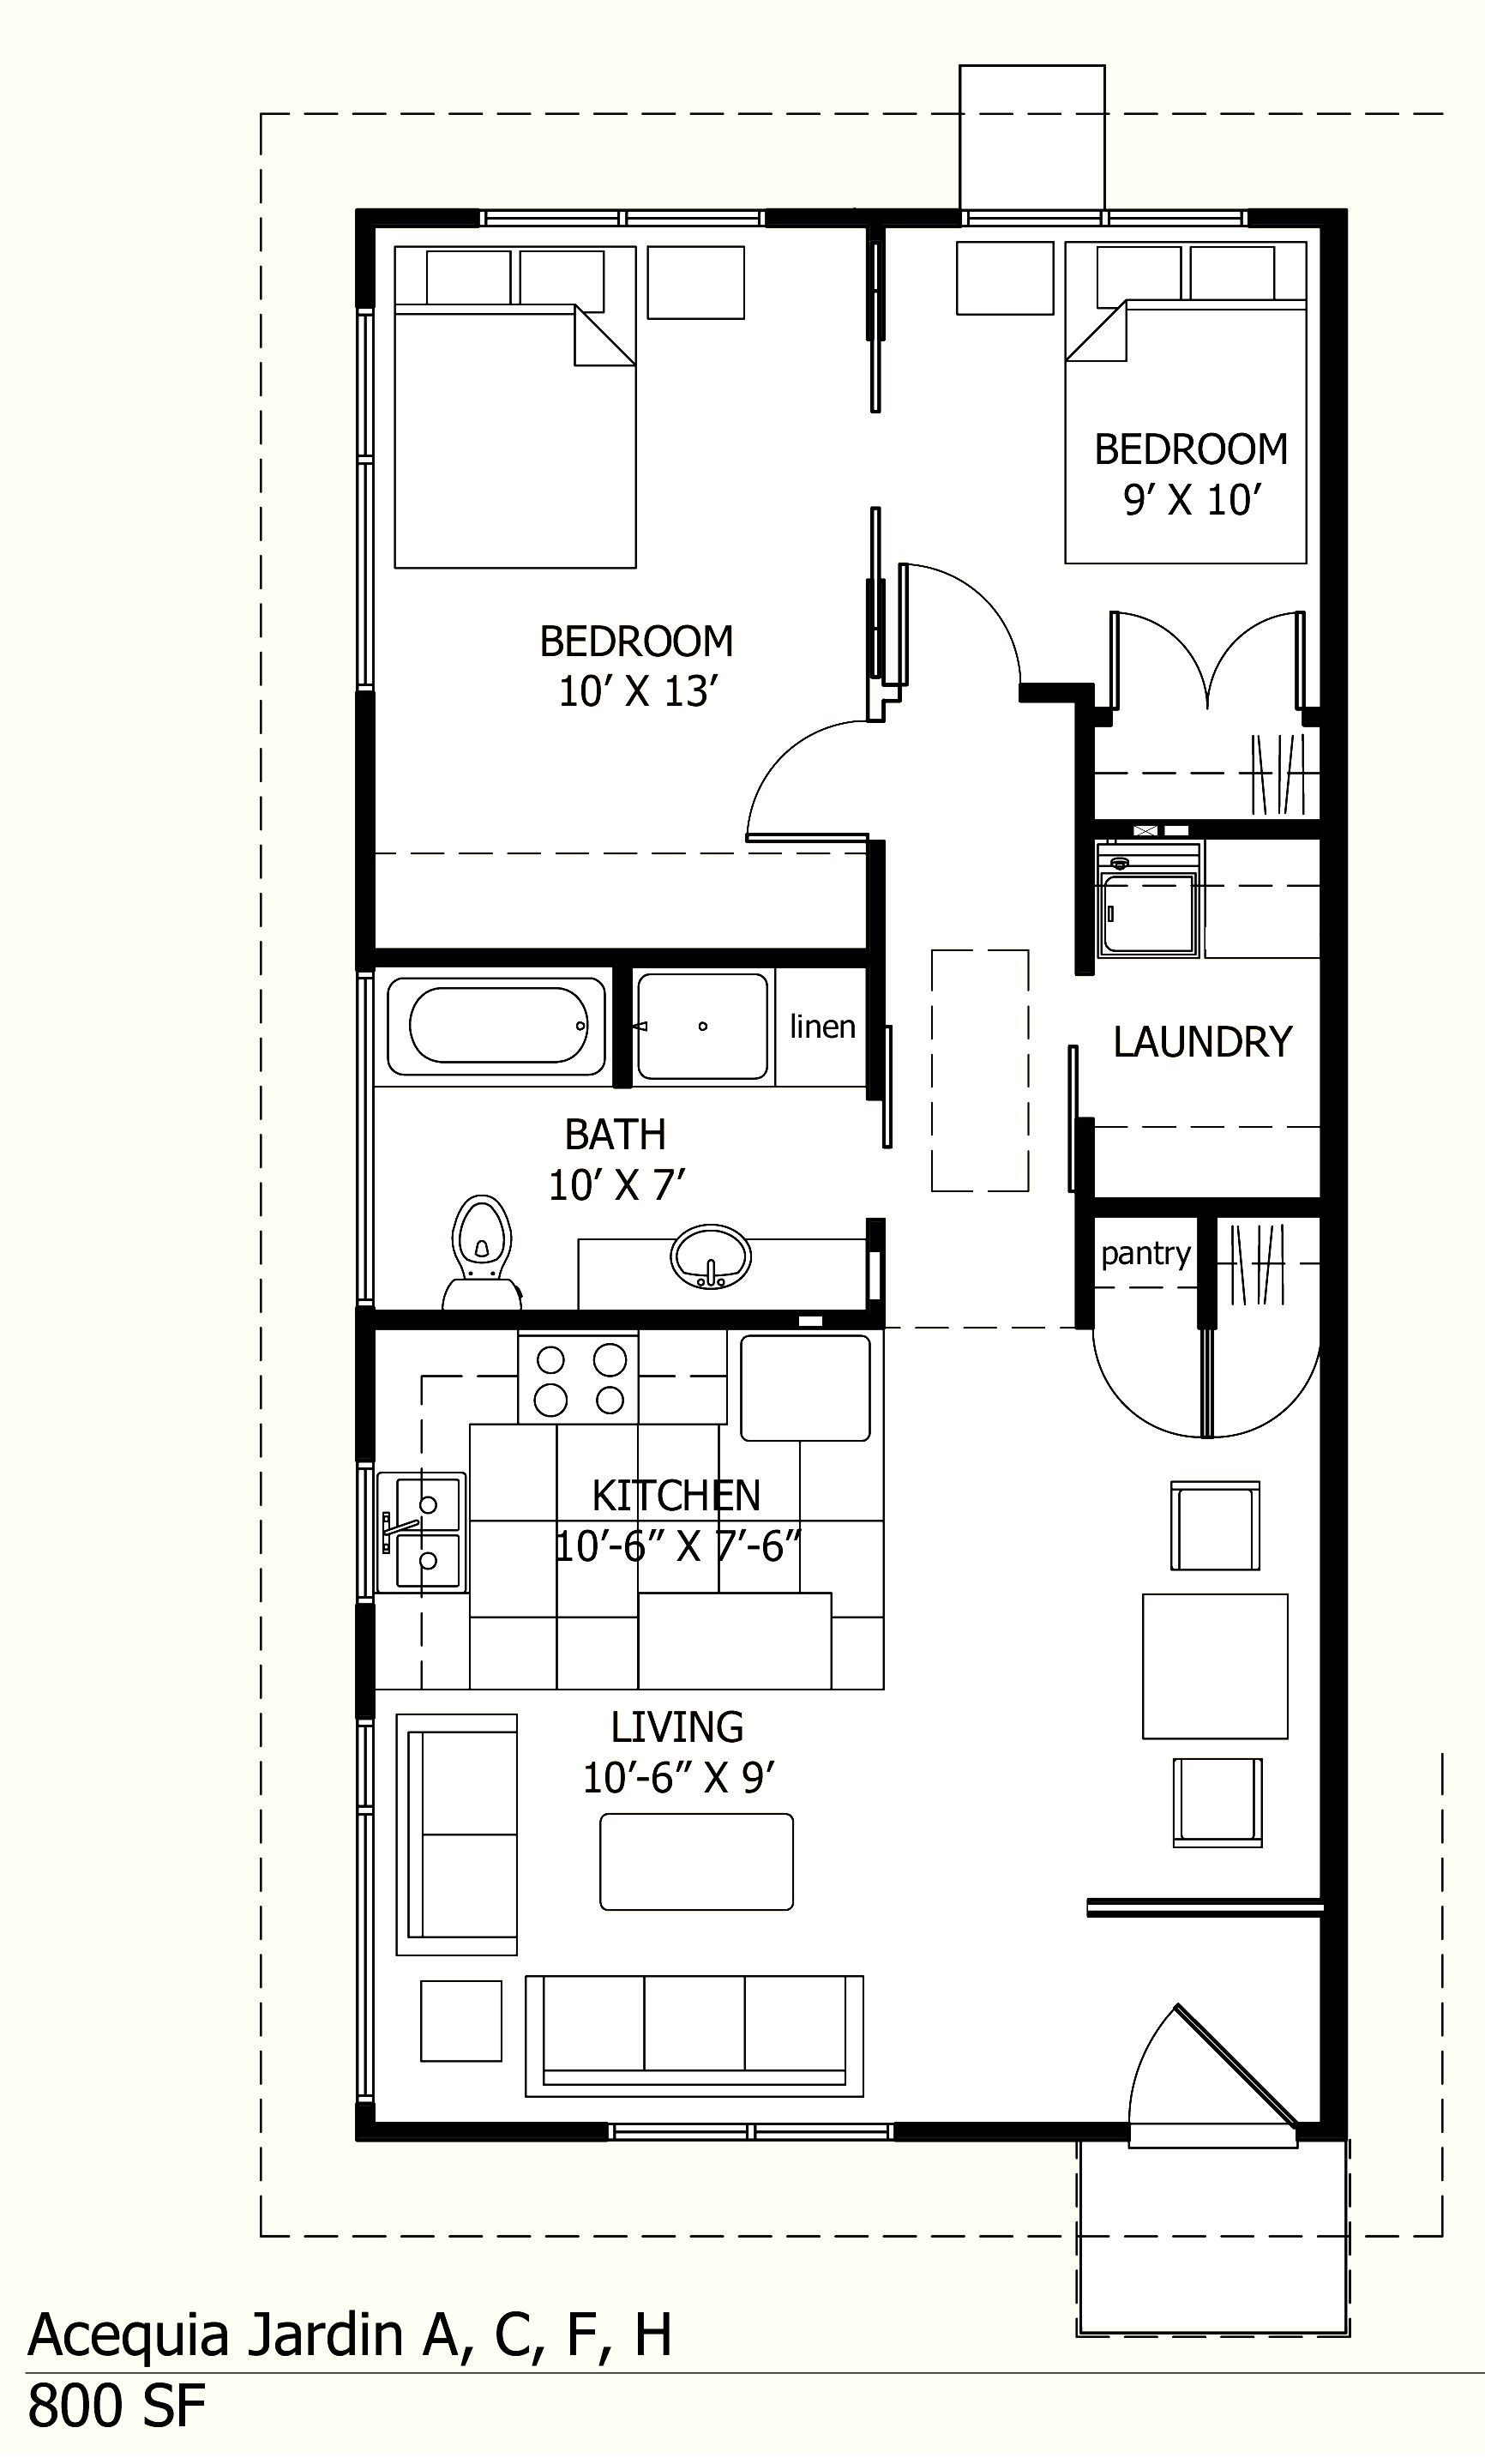 I Like This One Because There Is A Laundry Room 800 Sq Ft Floor Plans Bing Images Small House Layout Small House Plans House Floor Plans